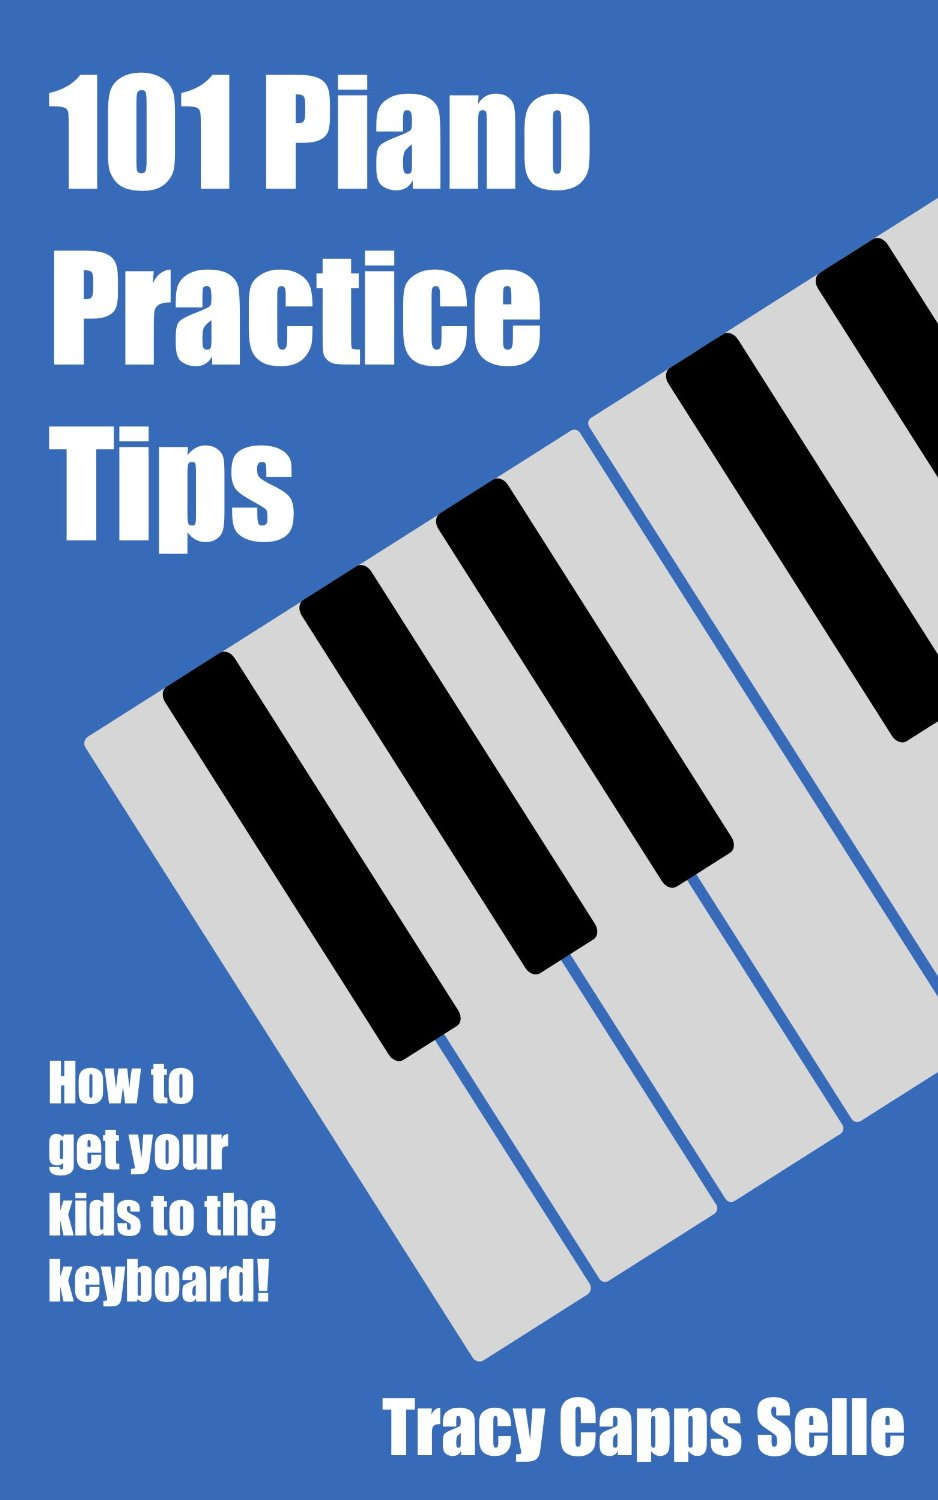 101 Piano Practice Tips by Tracy Capps Selle